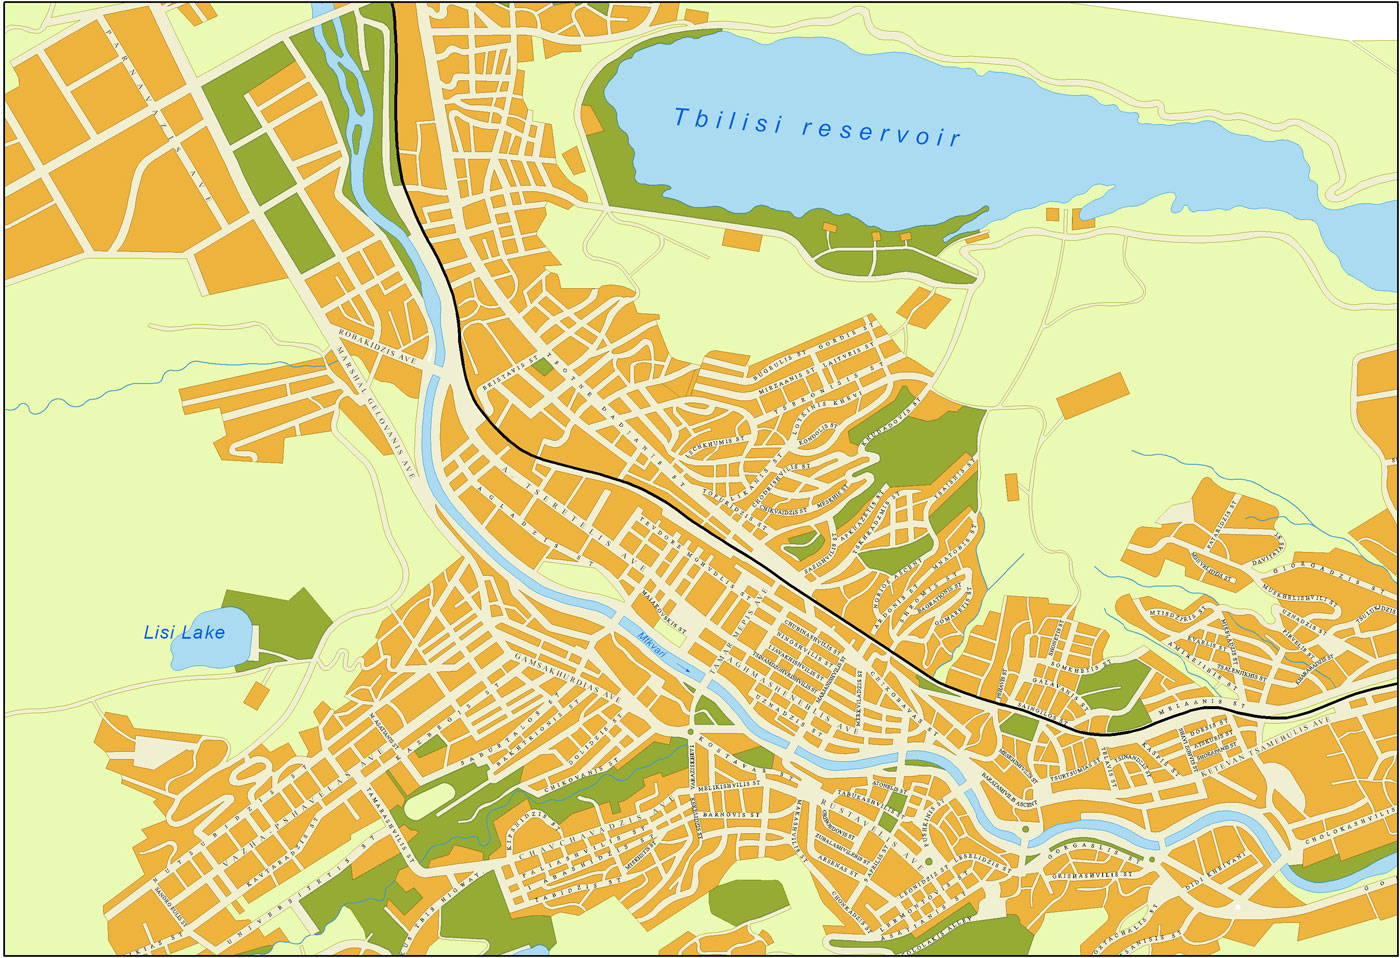 File:Tbilisi detailed map.jpg - Wikimedia Commons Tbilisi Map